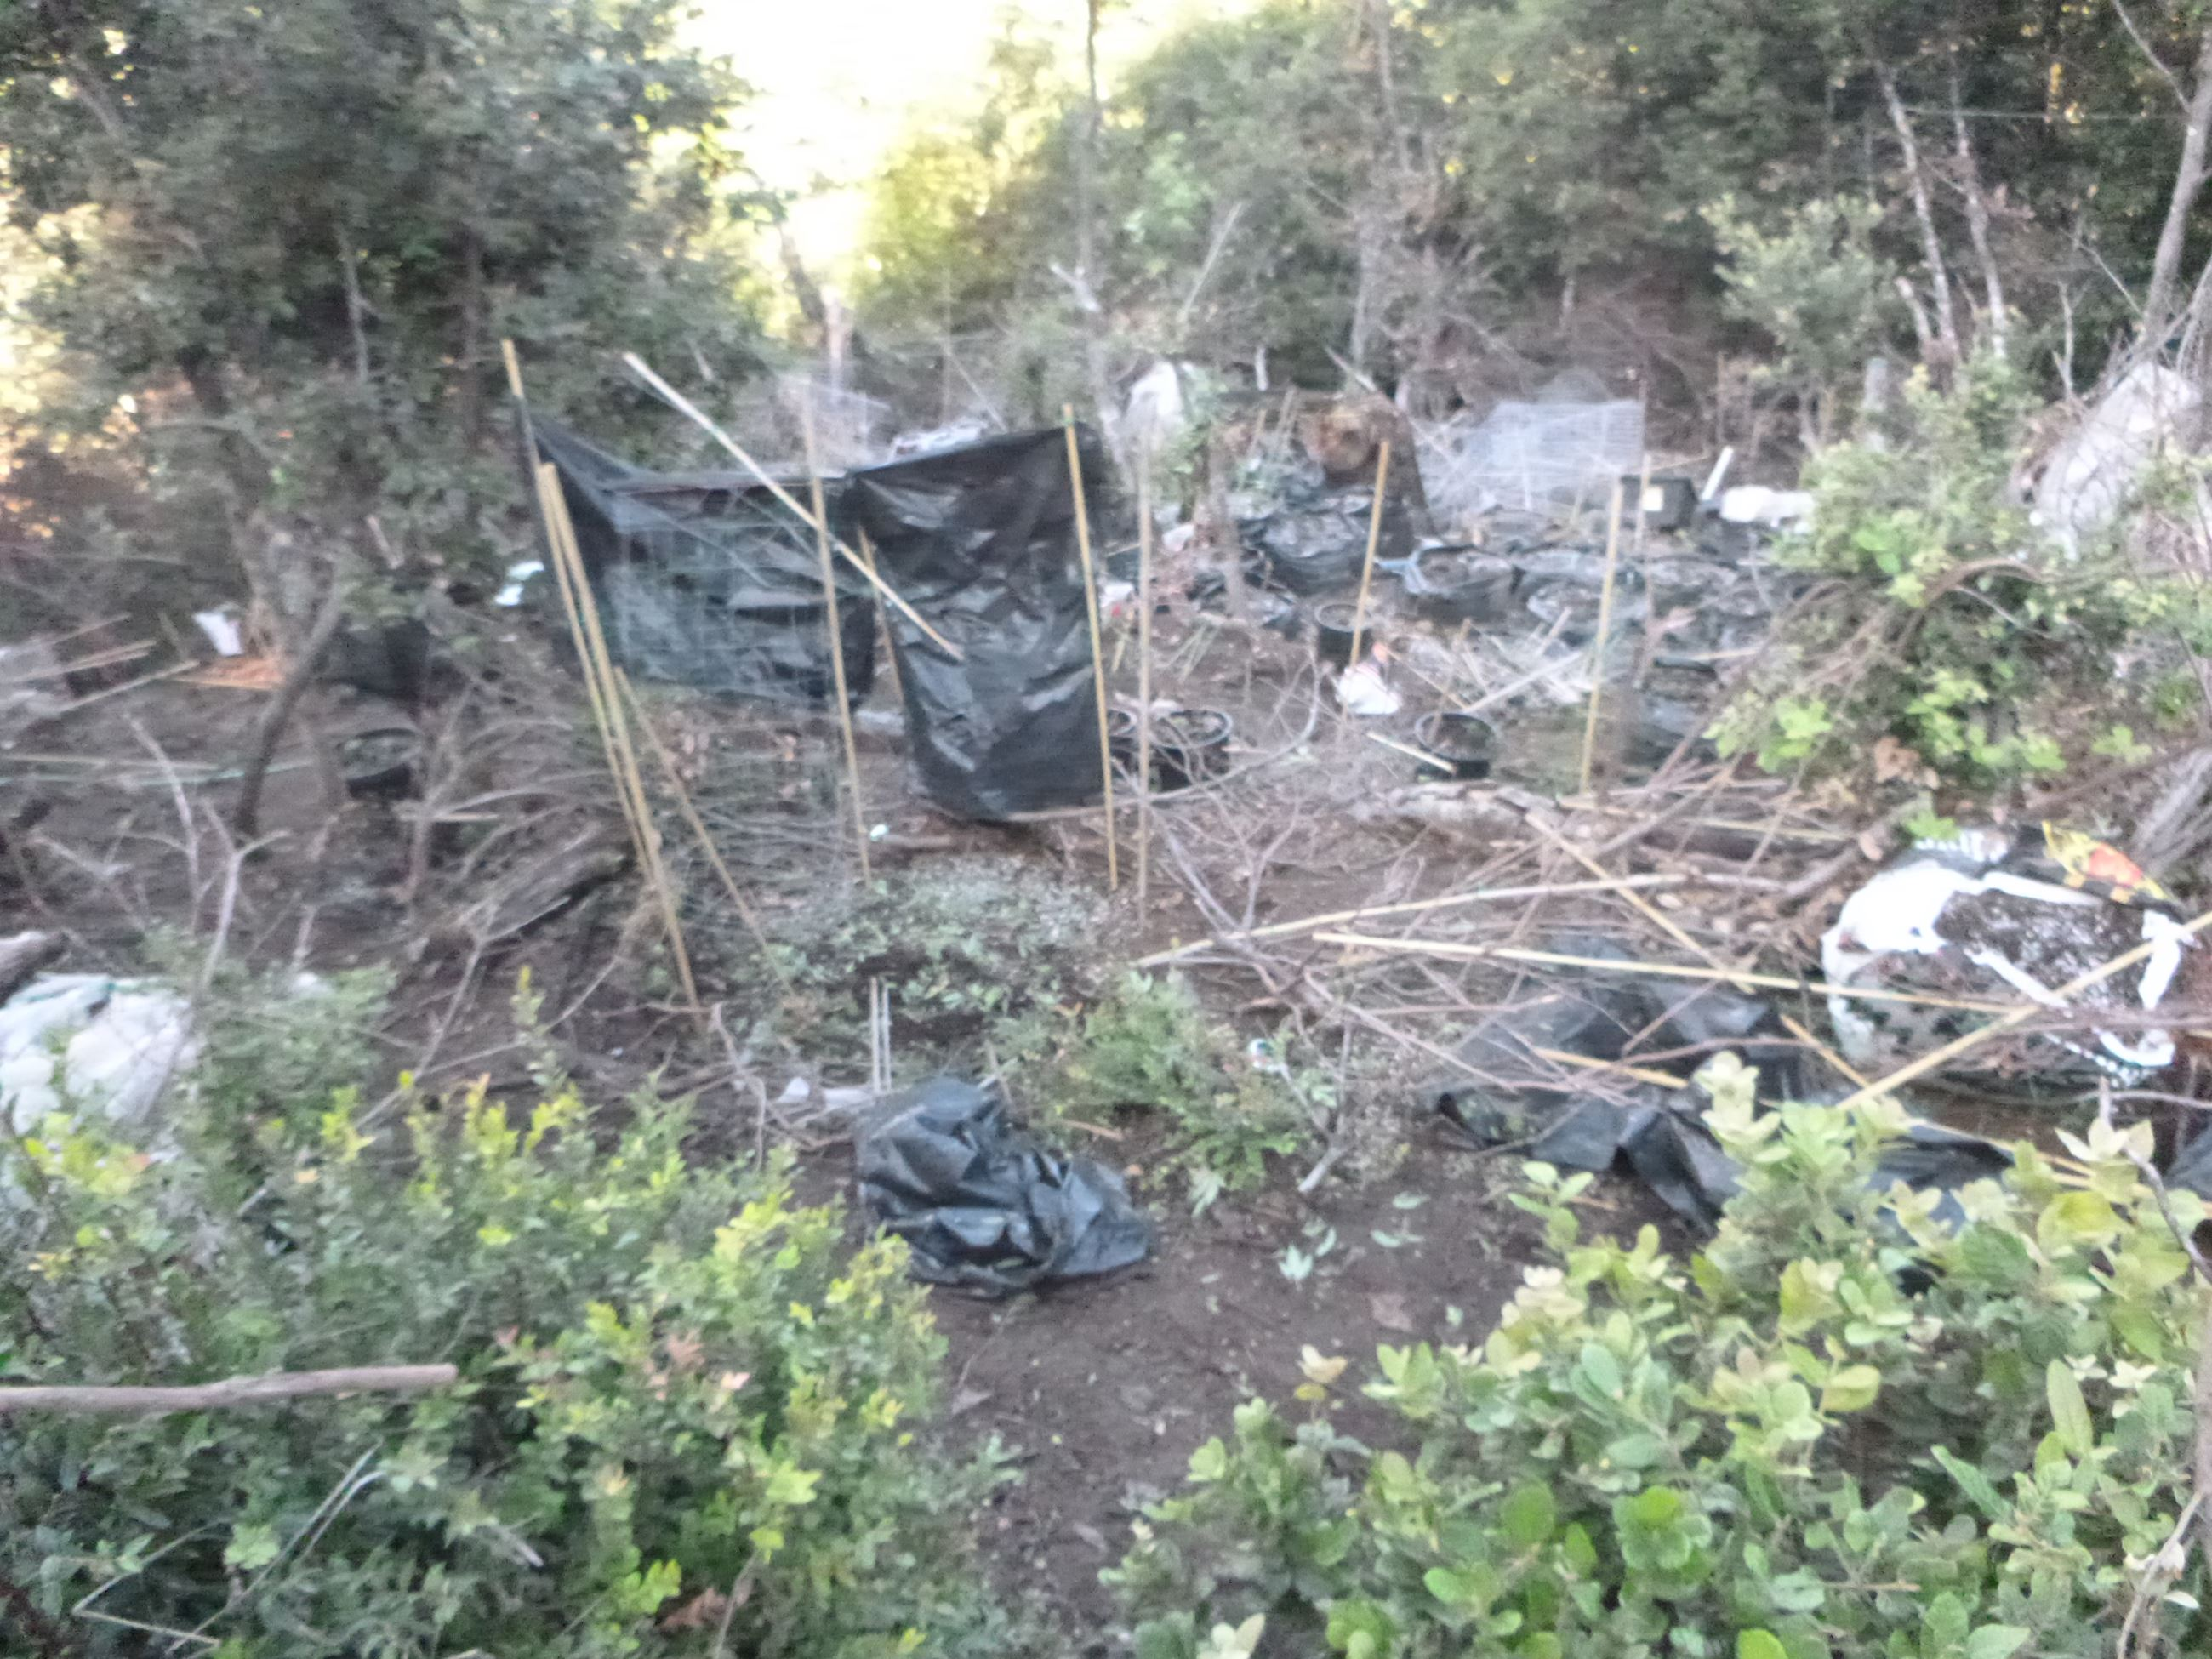 Marijuana Eradication - Case 201605245